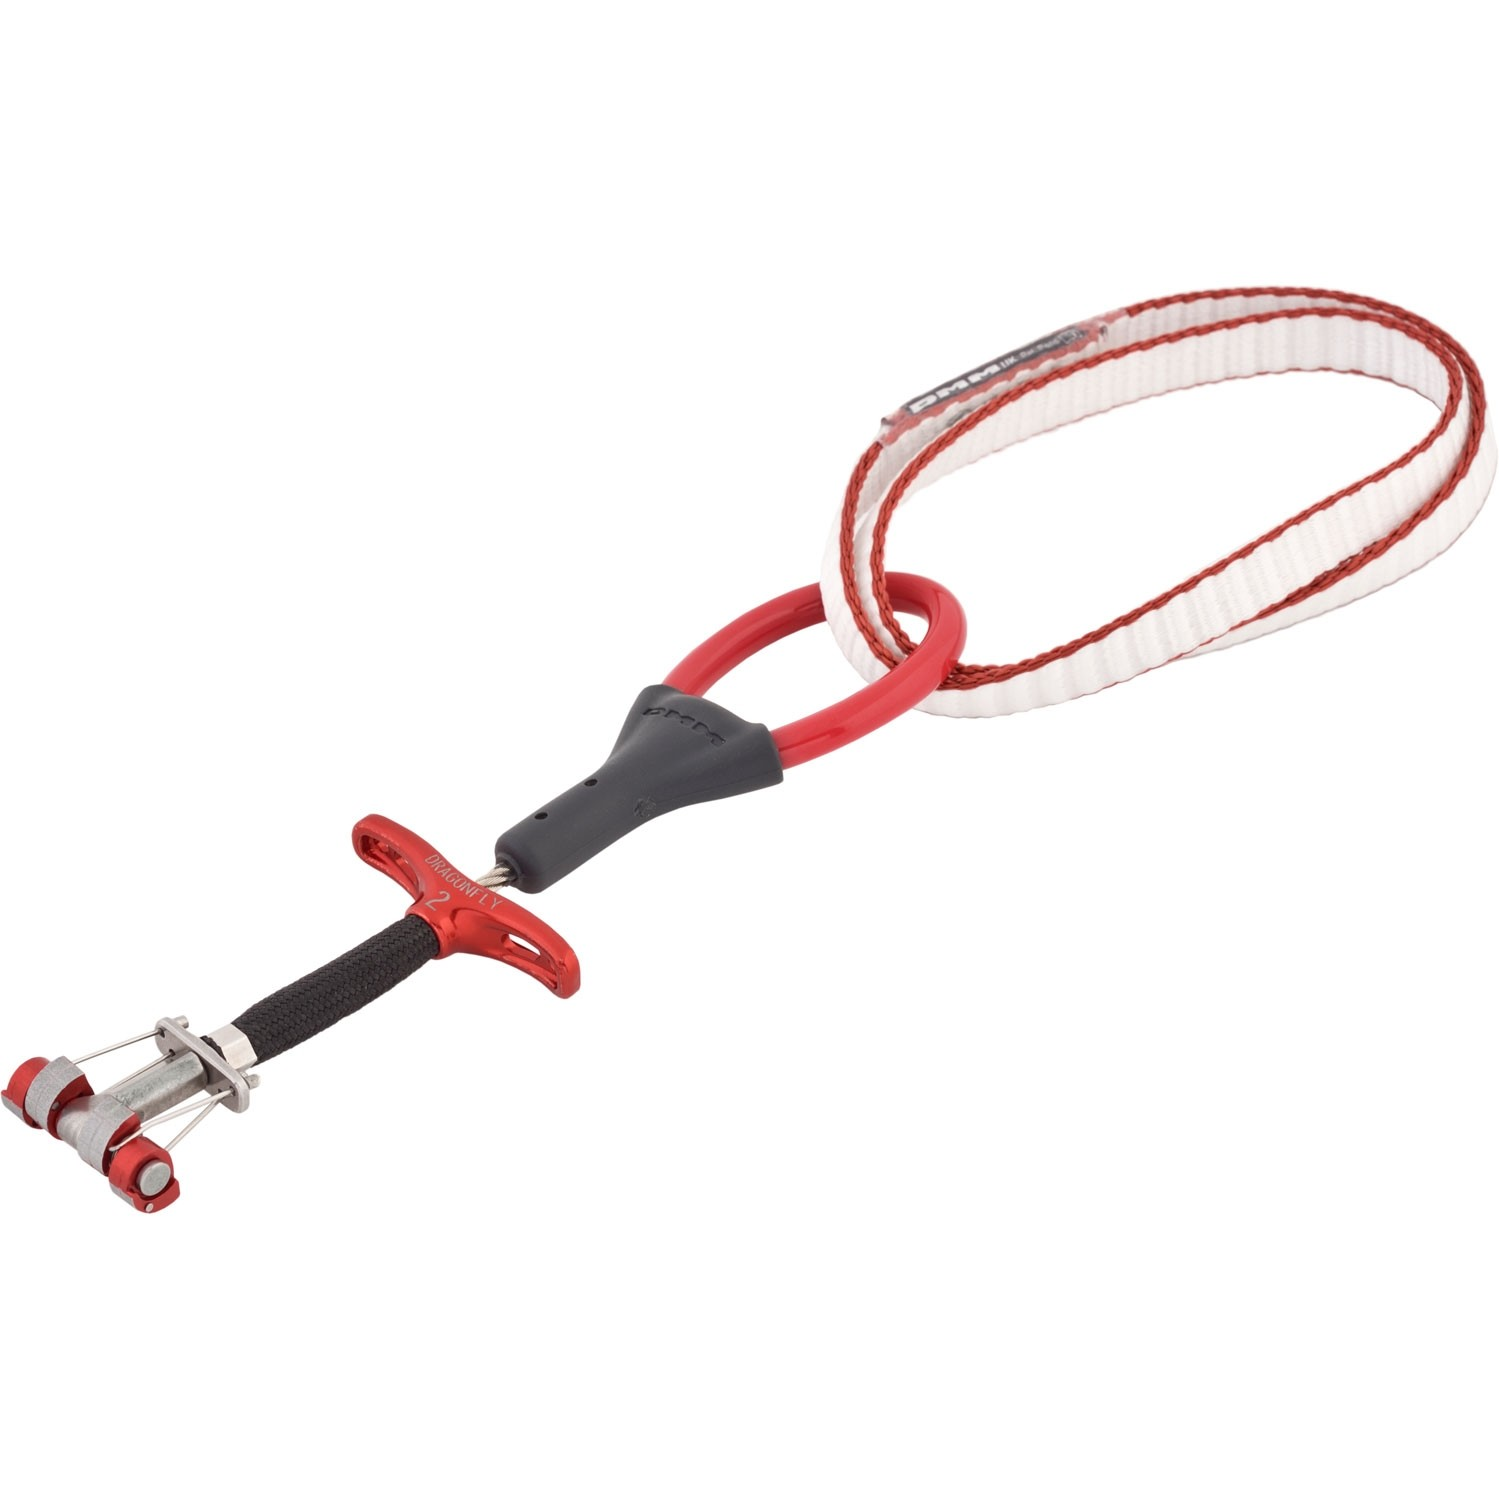 DMM Dragonfly Micro Cam - Size 2 - Red